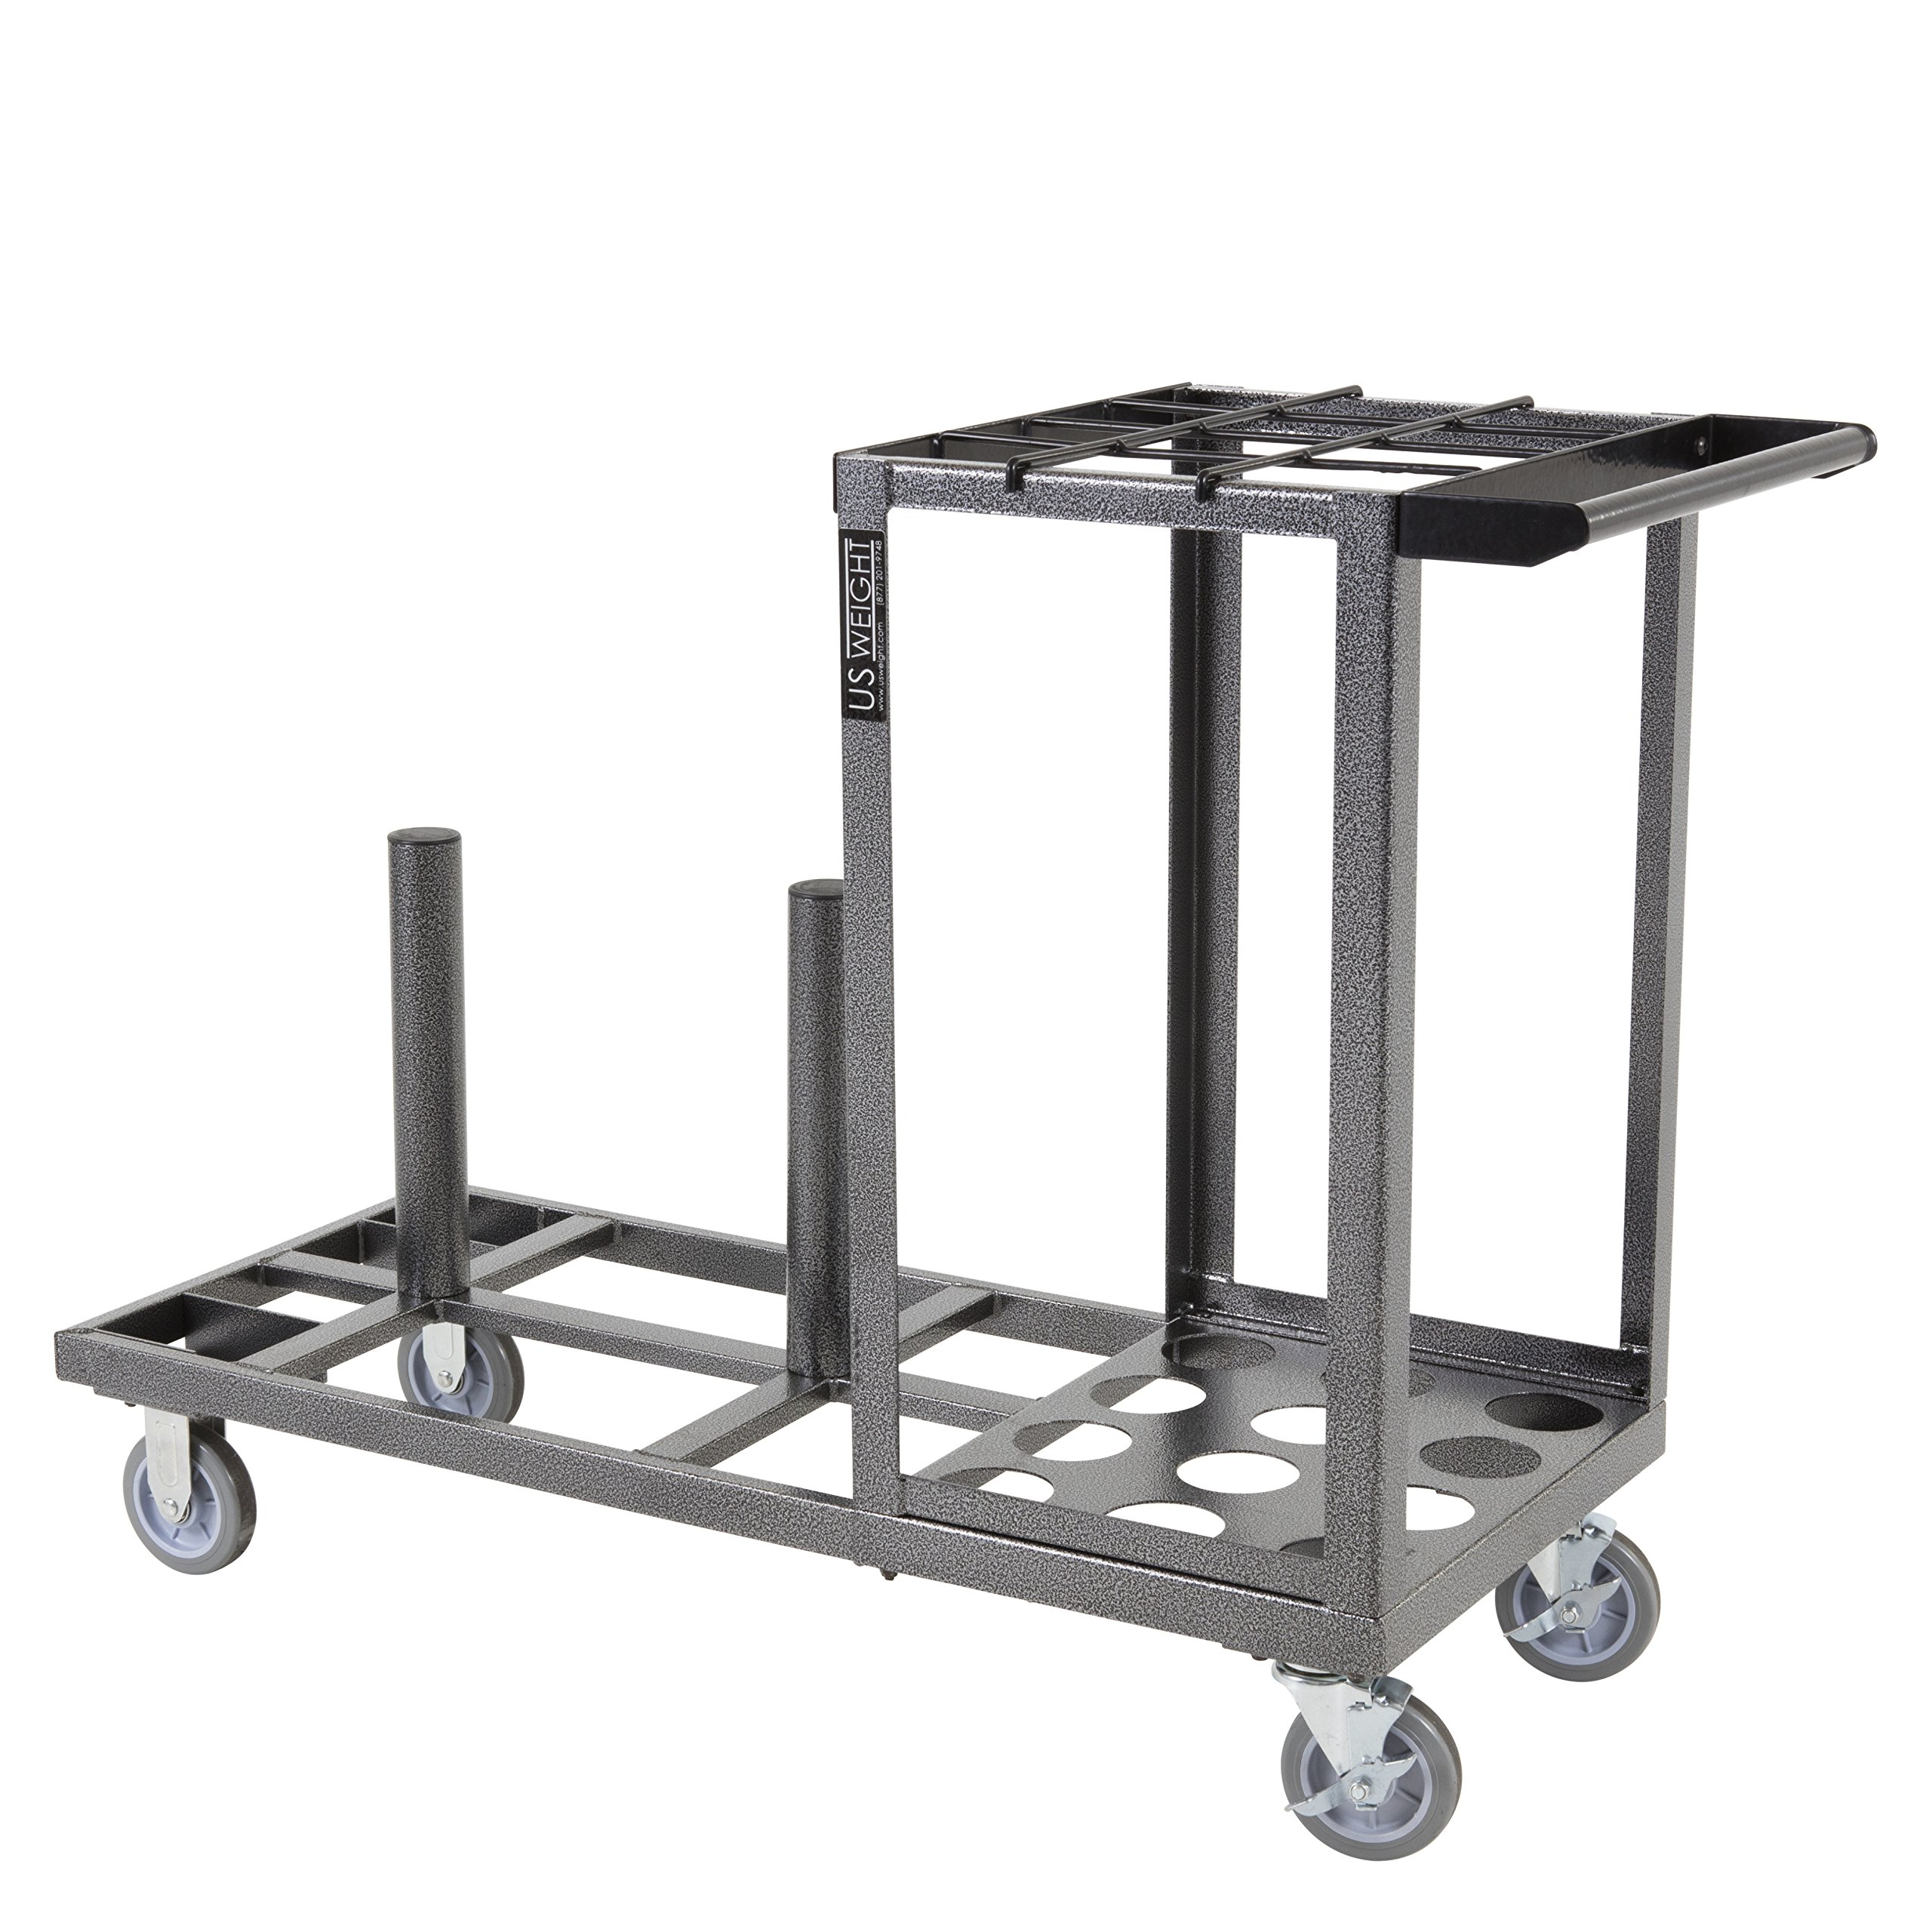 US Weight Statesman Stanchion Cart Kit – 12 Premium Black Steel Stanchions with Cart by US Weight (Image #20)